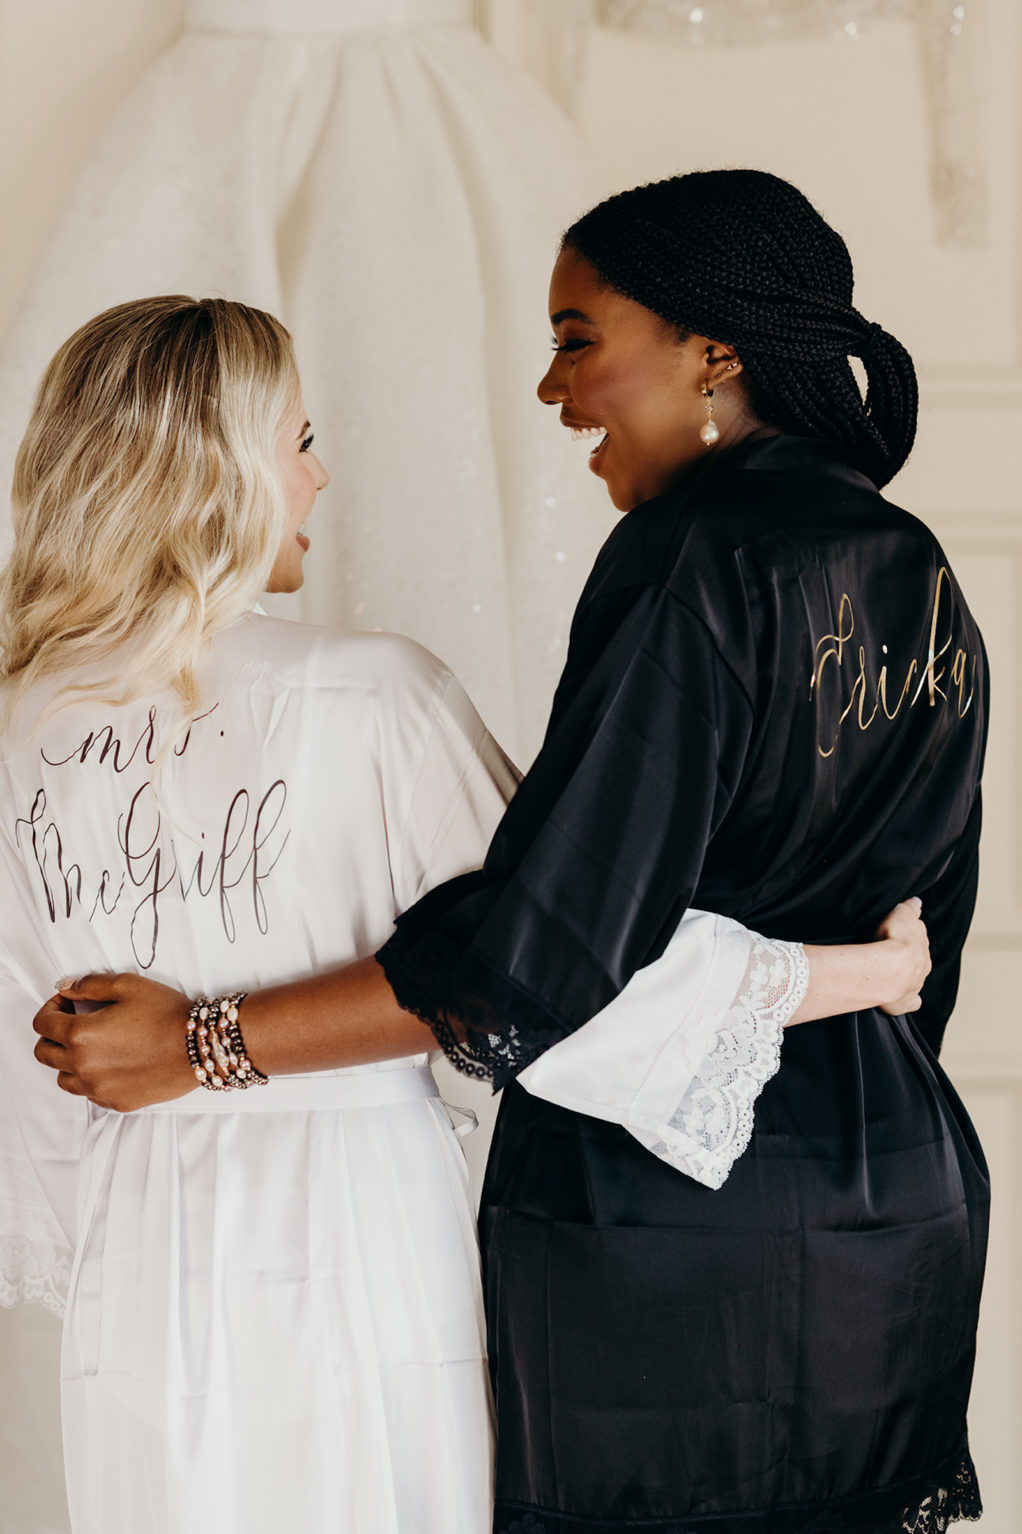 Bride in White Personalized Robe and Bridesmaids in Black Robe